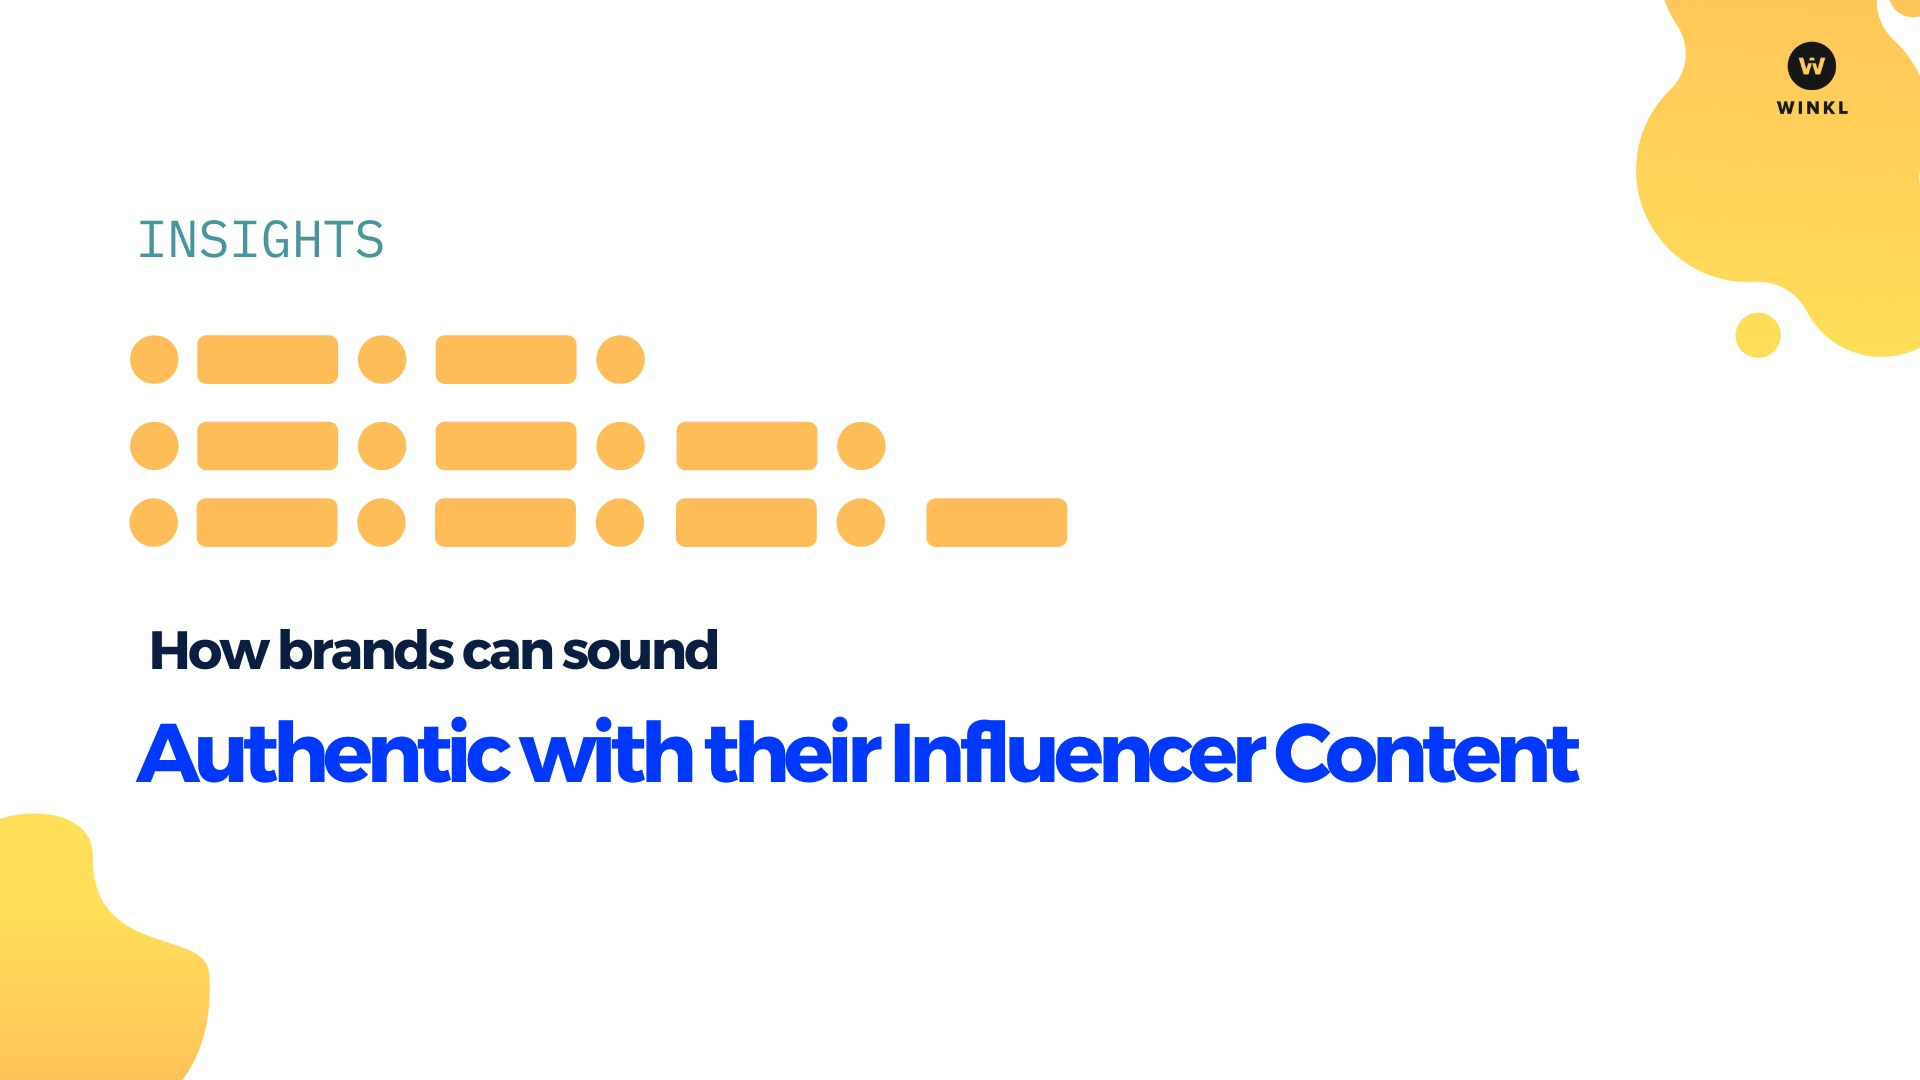 How brands can sound authentic with their influencer content? - blog by Winkl (An influencer marketing platform)